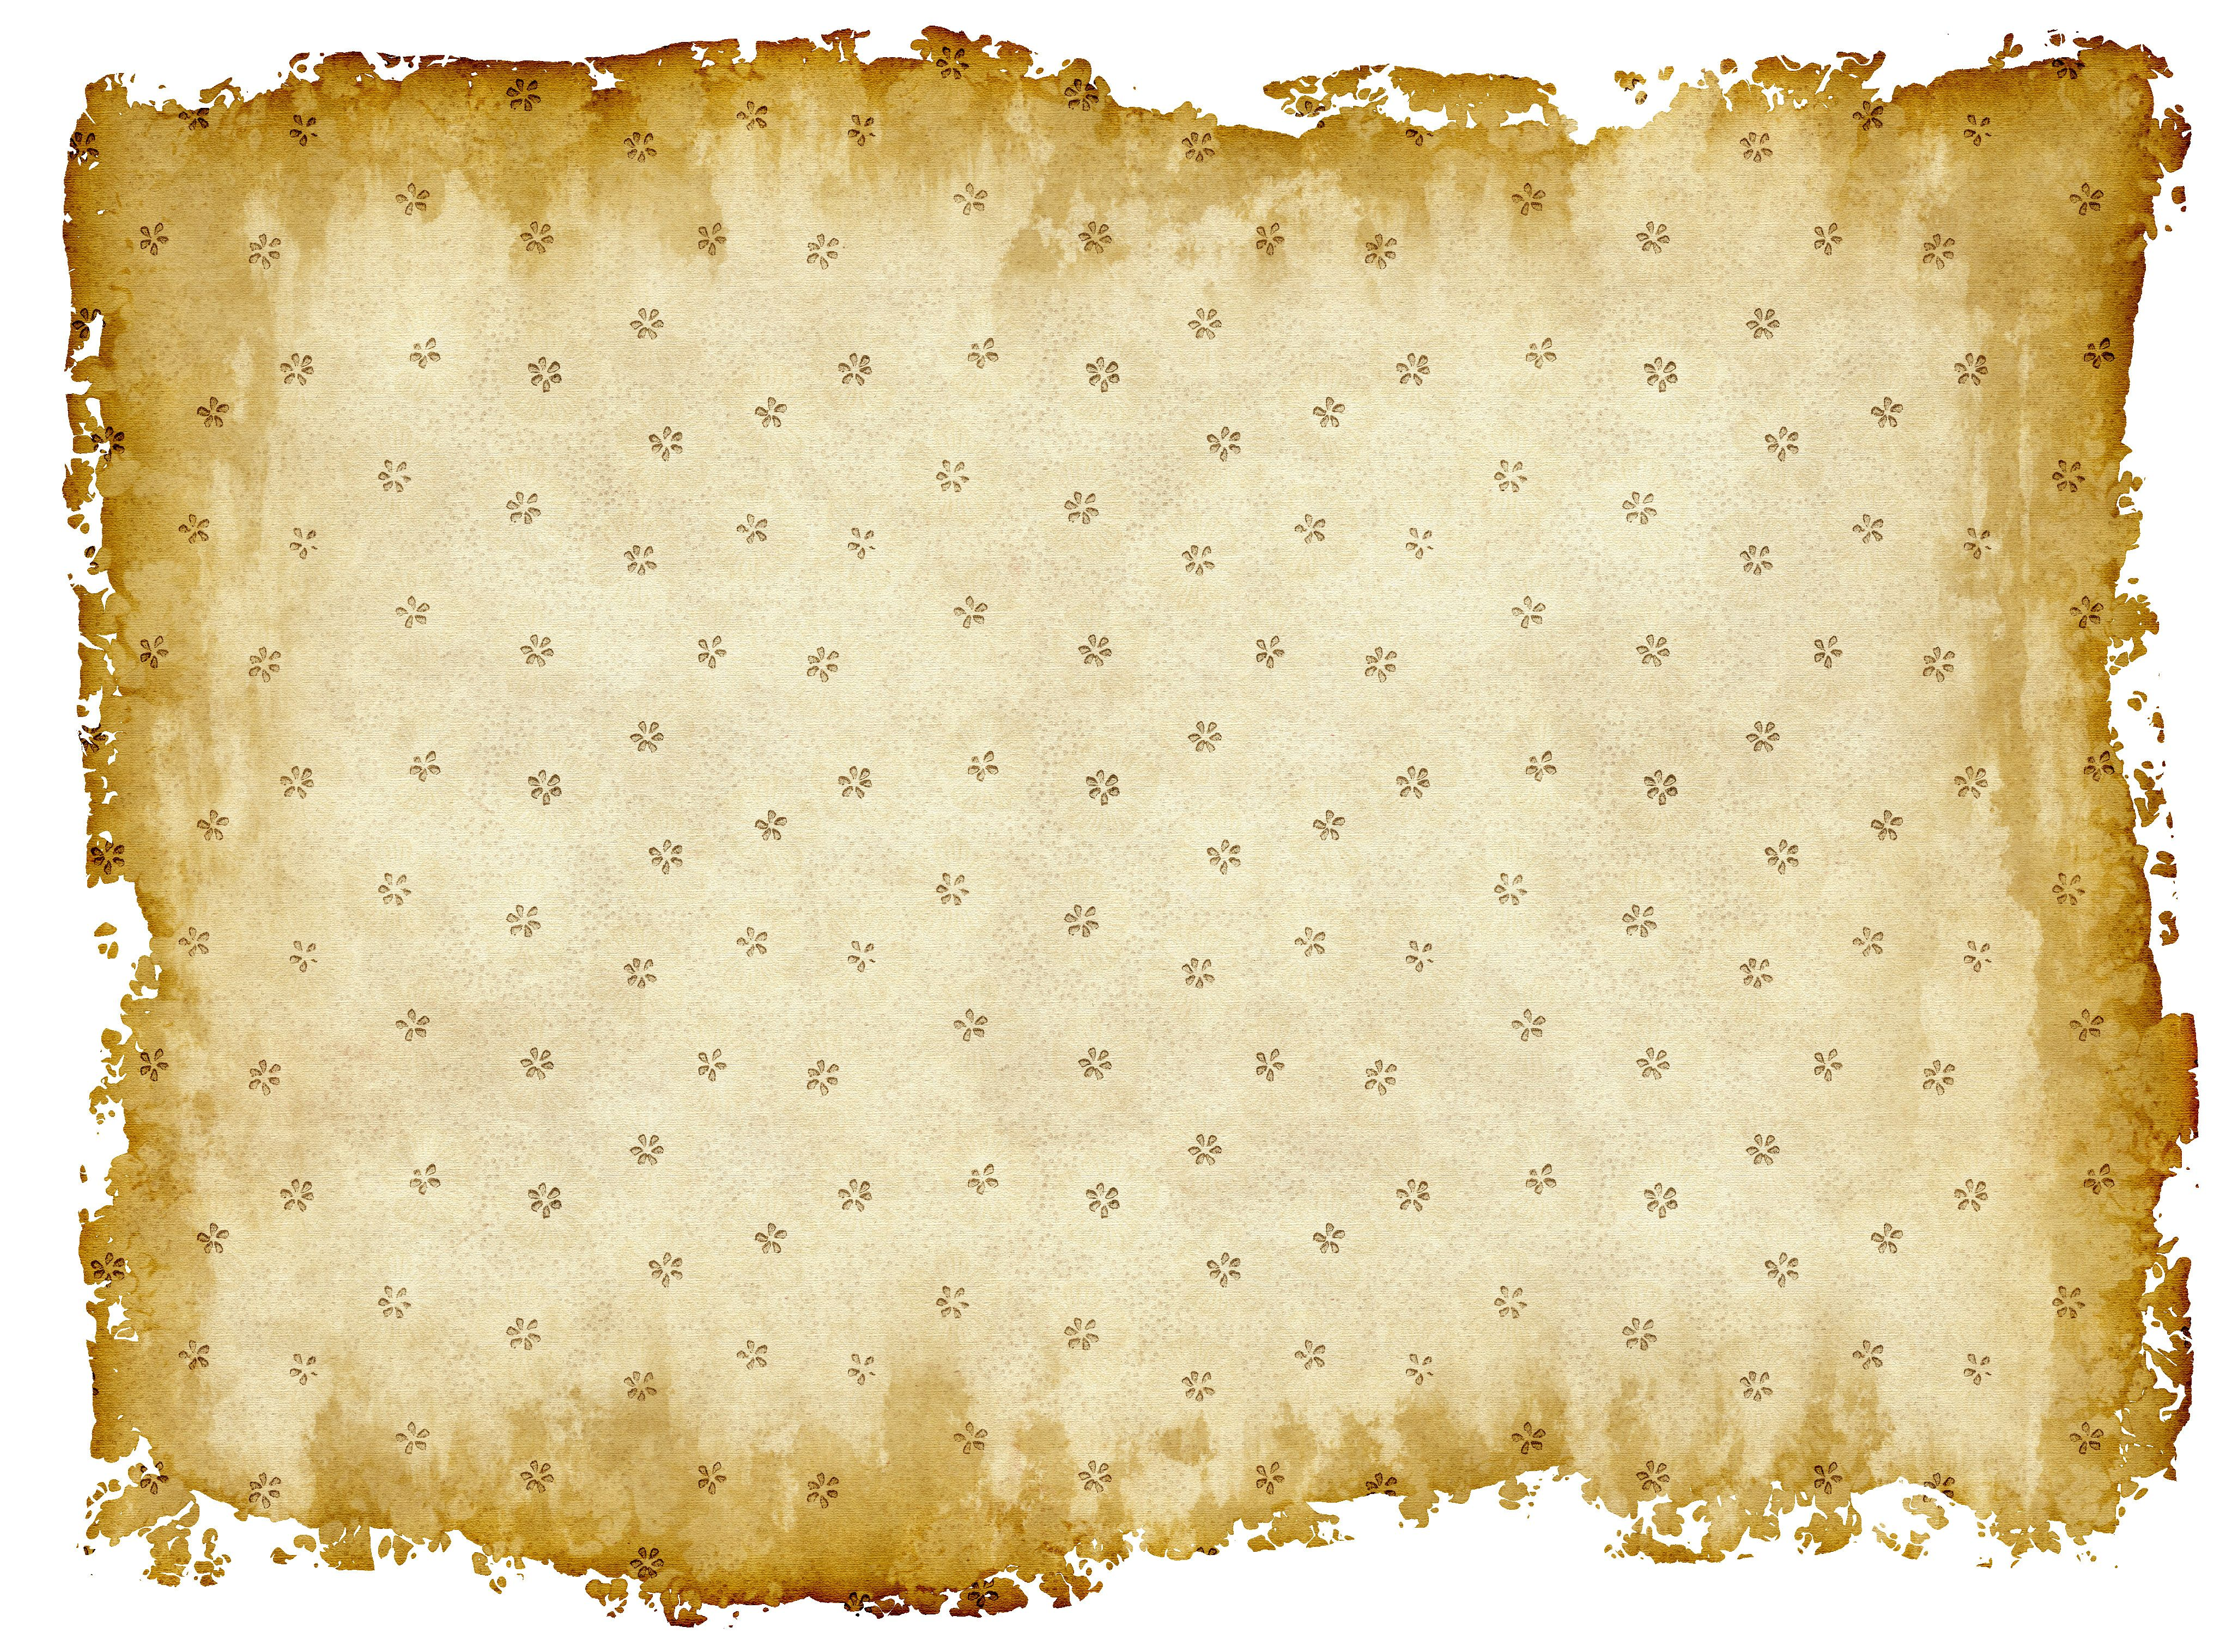 background image of old parchment paper history teaching